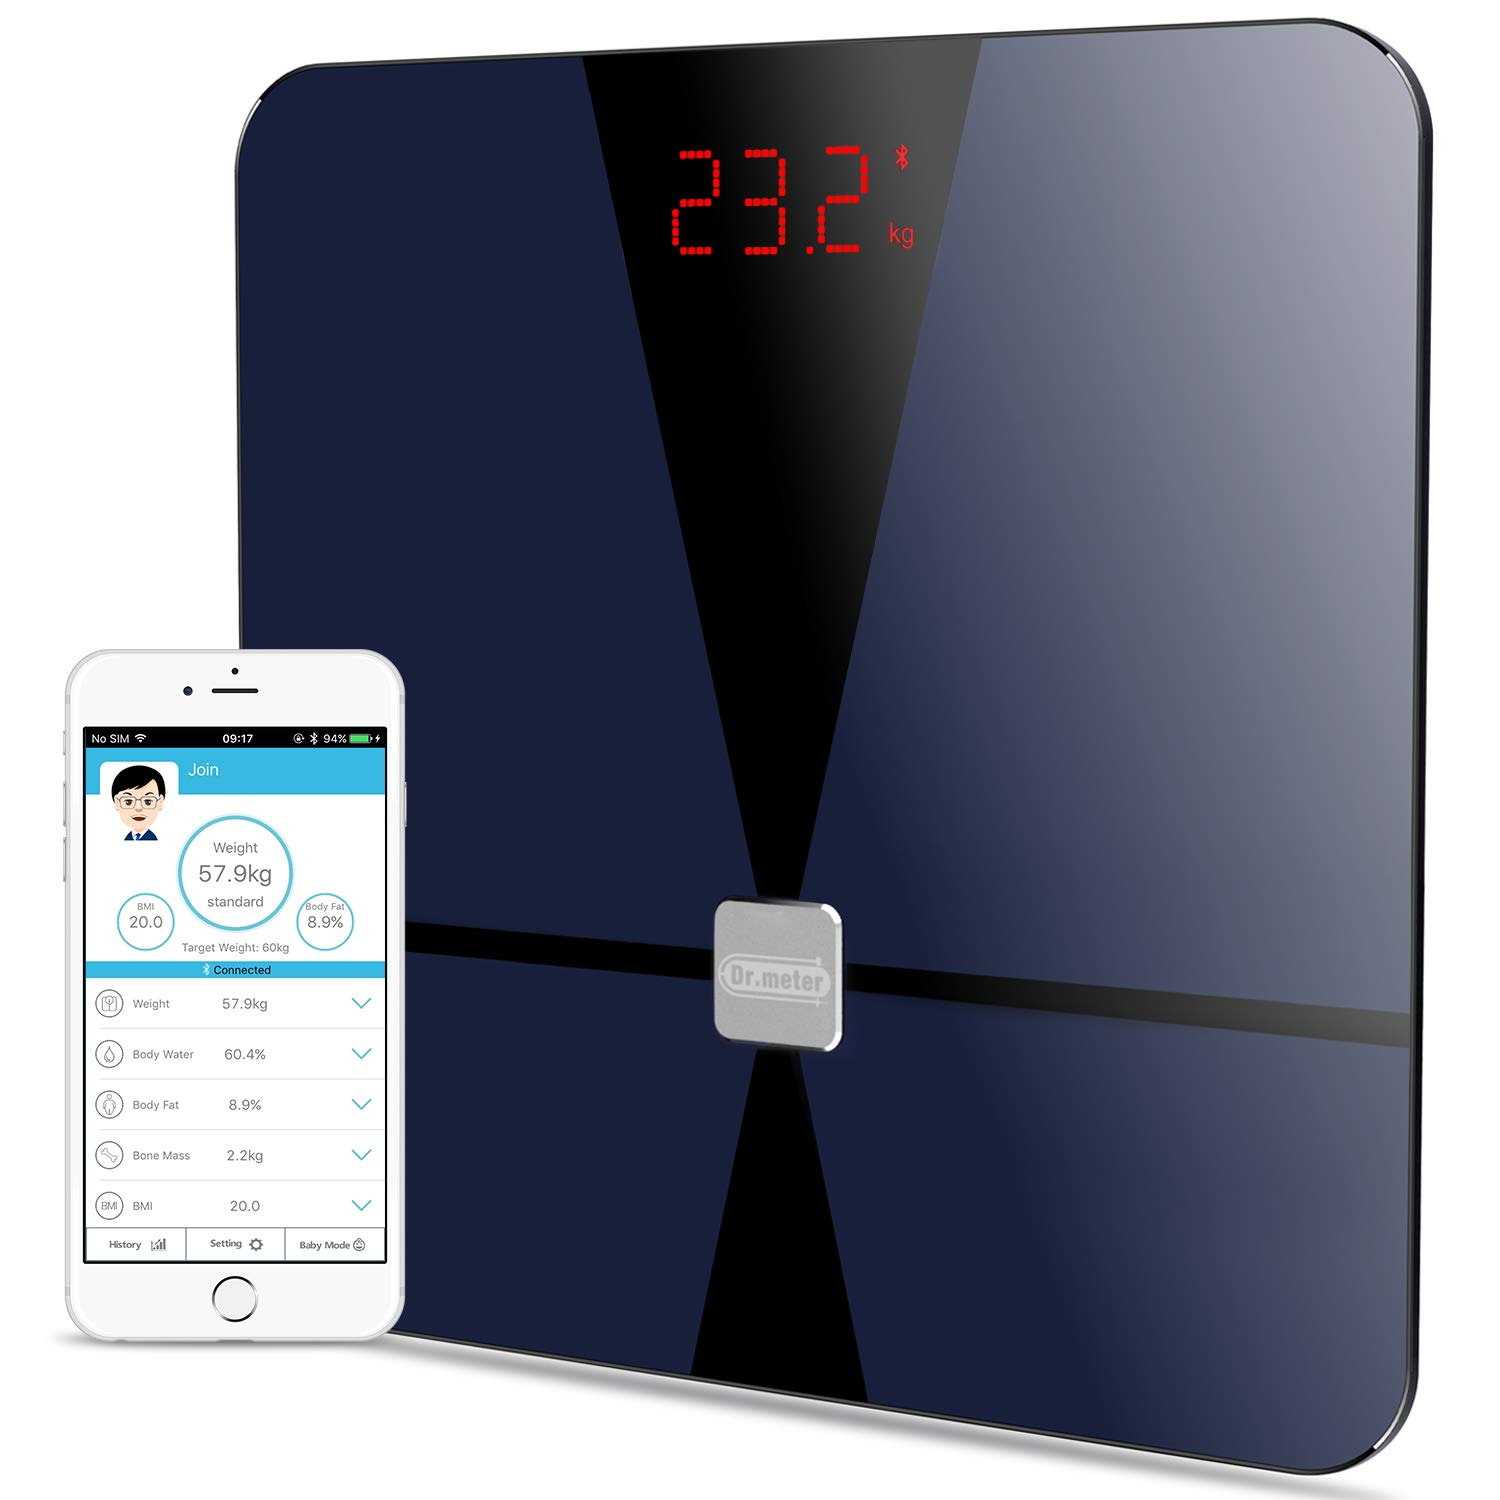 BMI Digital Bluetooth Body Fat Scale, Dr.meter Smart Bathroom Weight Scale Body Composition Analyzer Health Monitor with iOS and Android App, Sensitive ITO Conductive Tempered Glass Surface-Black by Dr.meter